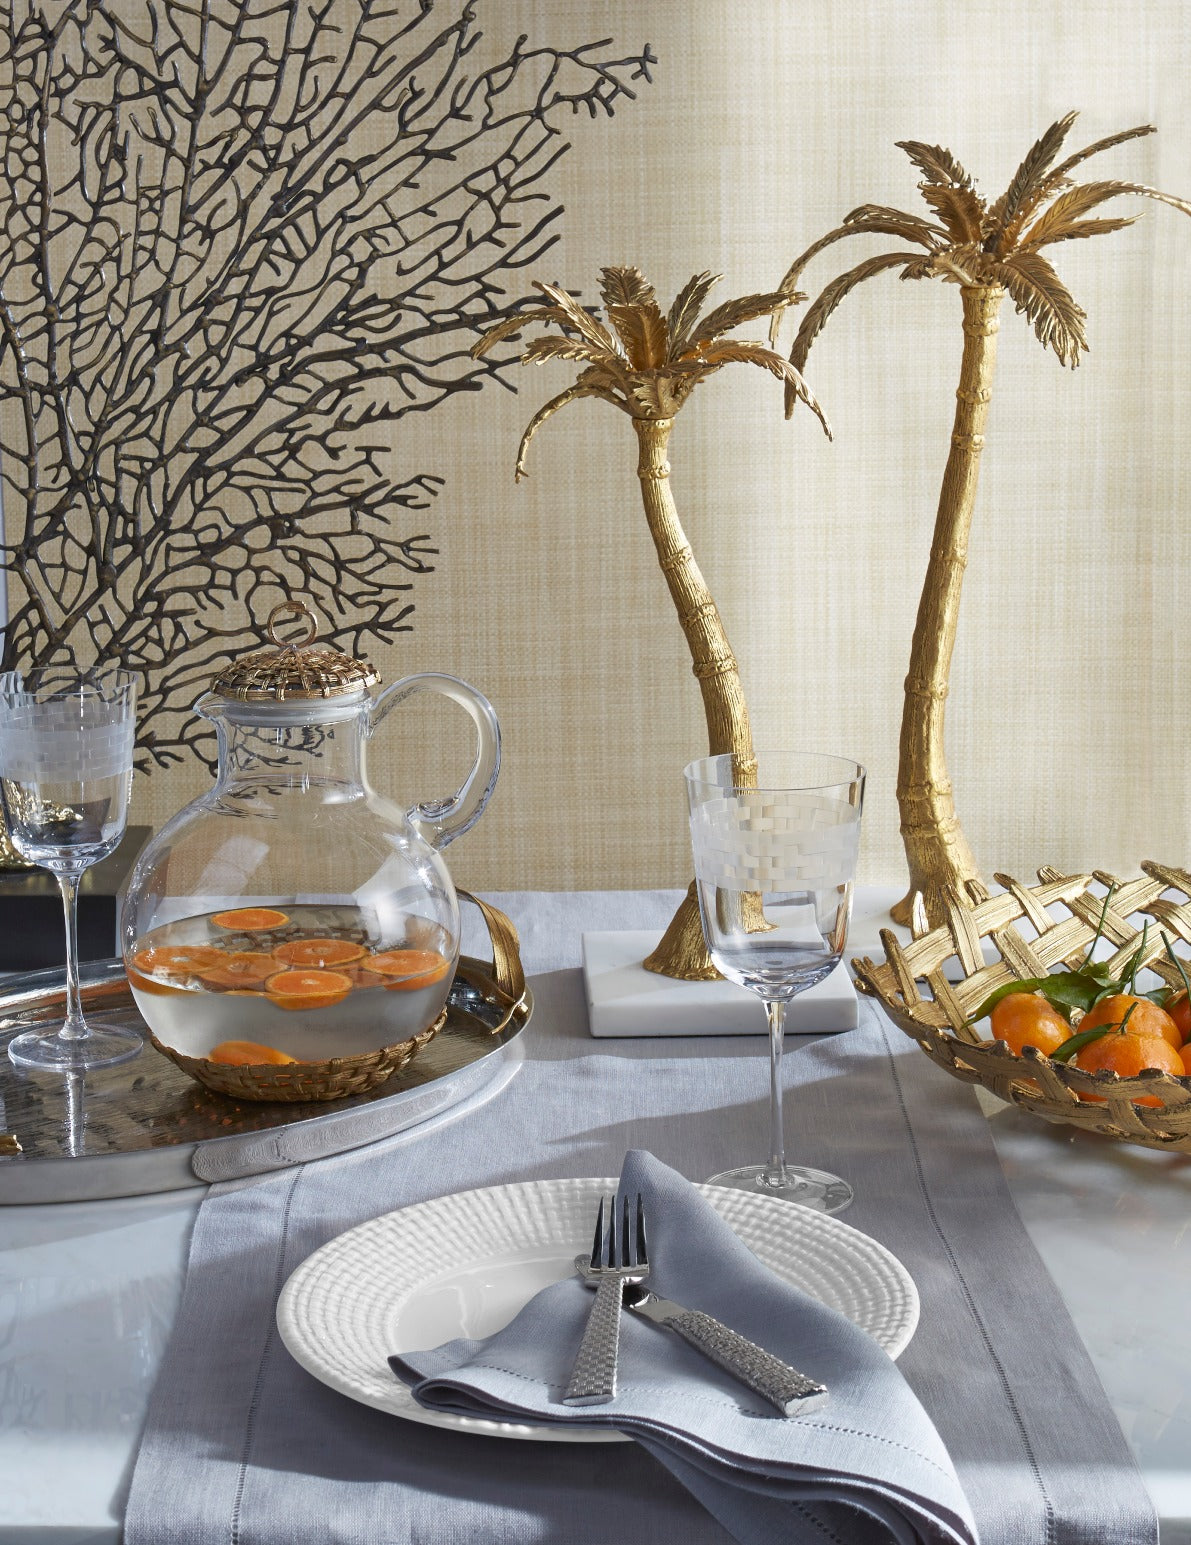 Tropical Tableware - How to Decorate with Tropical Prints in your Home Interior - LuxDeco.com